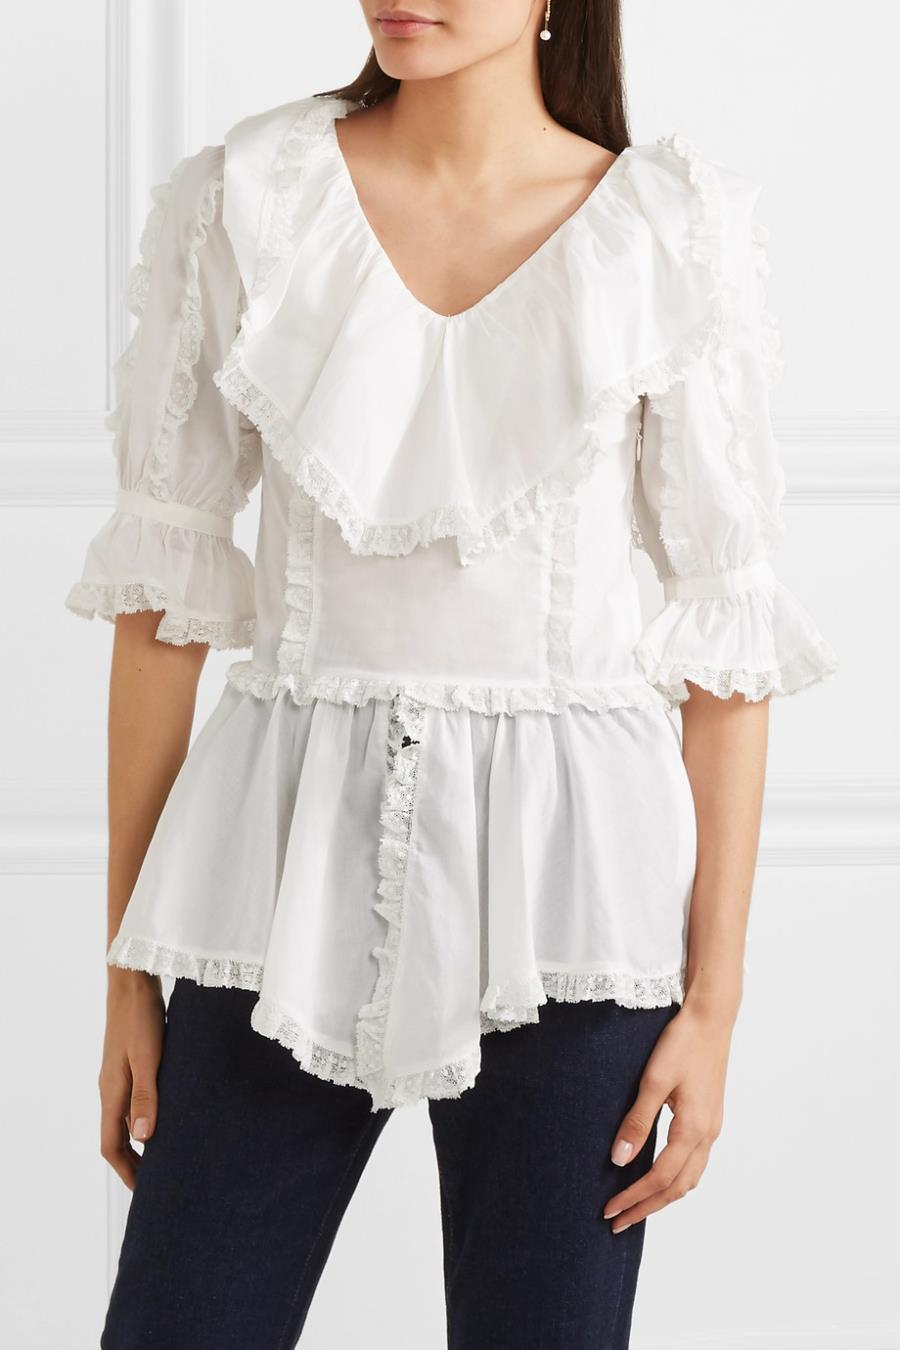 1 See by chloe camisa. See by Chloé